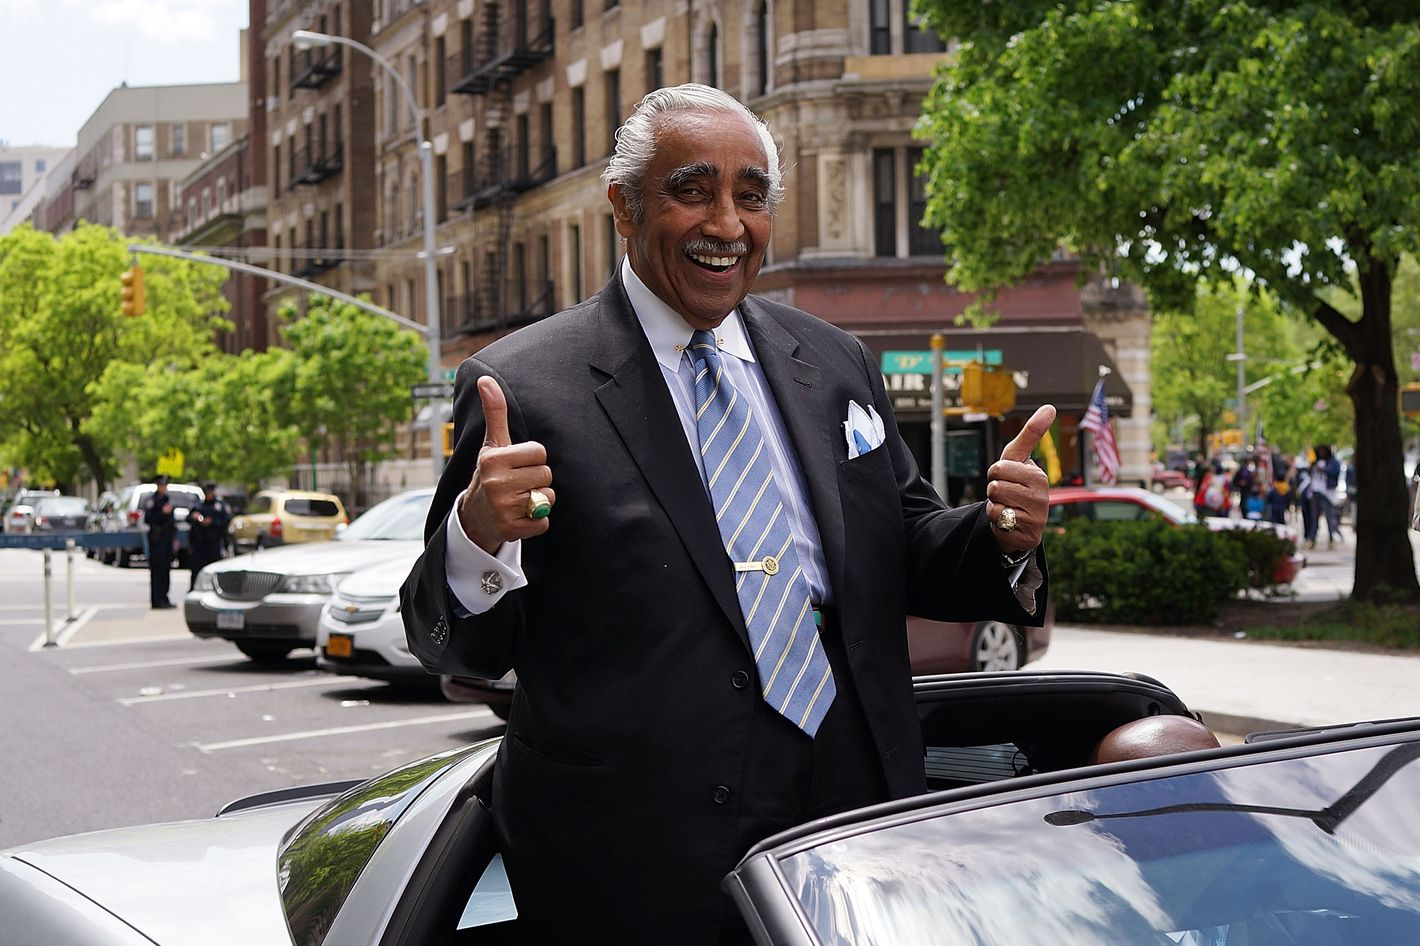 """NEW YORK, NY - MAY 18: Democratic congressman Charlie Rangel leads a march of soldiers, veterans and various other military aligned groups in the 369th Infantry Regiment Parade in Harlem on May 18, 2014 in New York City. The parade, which takes place on the historic Adam Clayton Powell Jr. Boulevard, looks to celebrate the contribution African Americans and Puerto Ricans have made to military. The 369th was home to the """"Harlem Hellfighters"""", a unit made up of both African Americans and Puerto Ricans, which fought in both World War I and World War II.  (Photo by Spencer Platt/Getty Images)"""